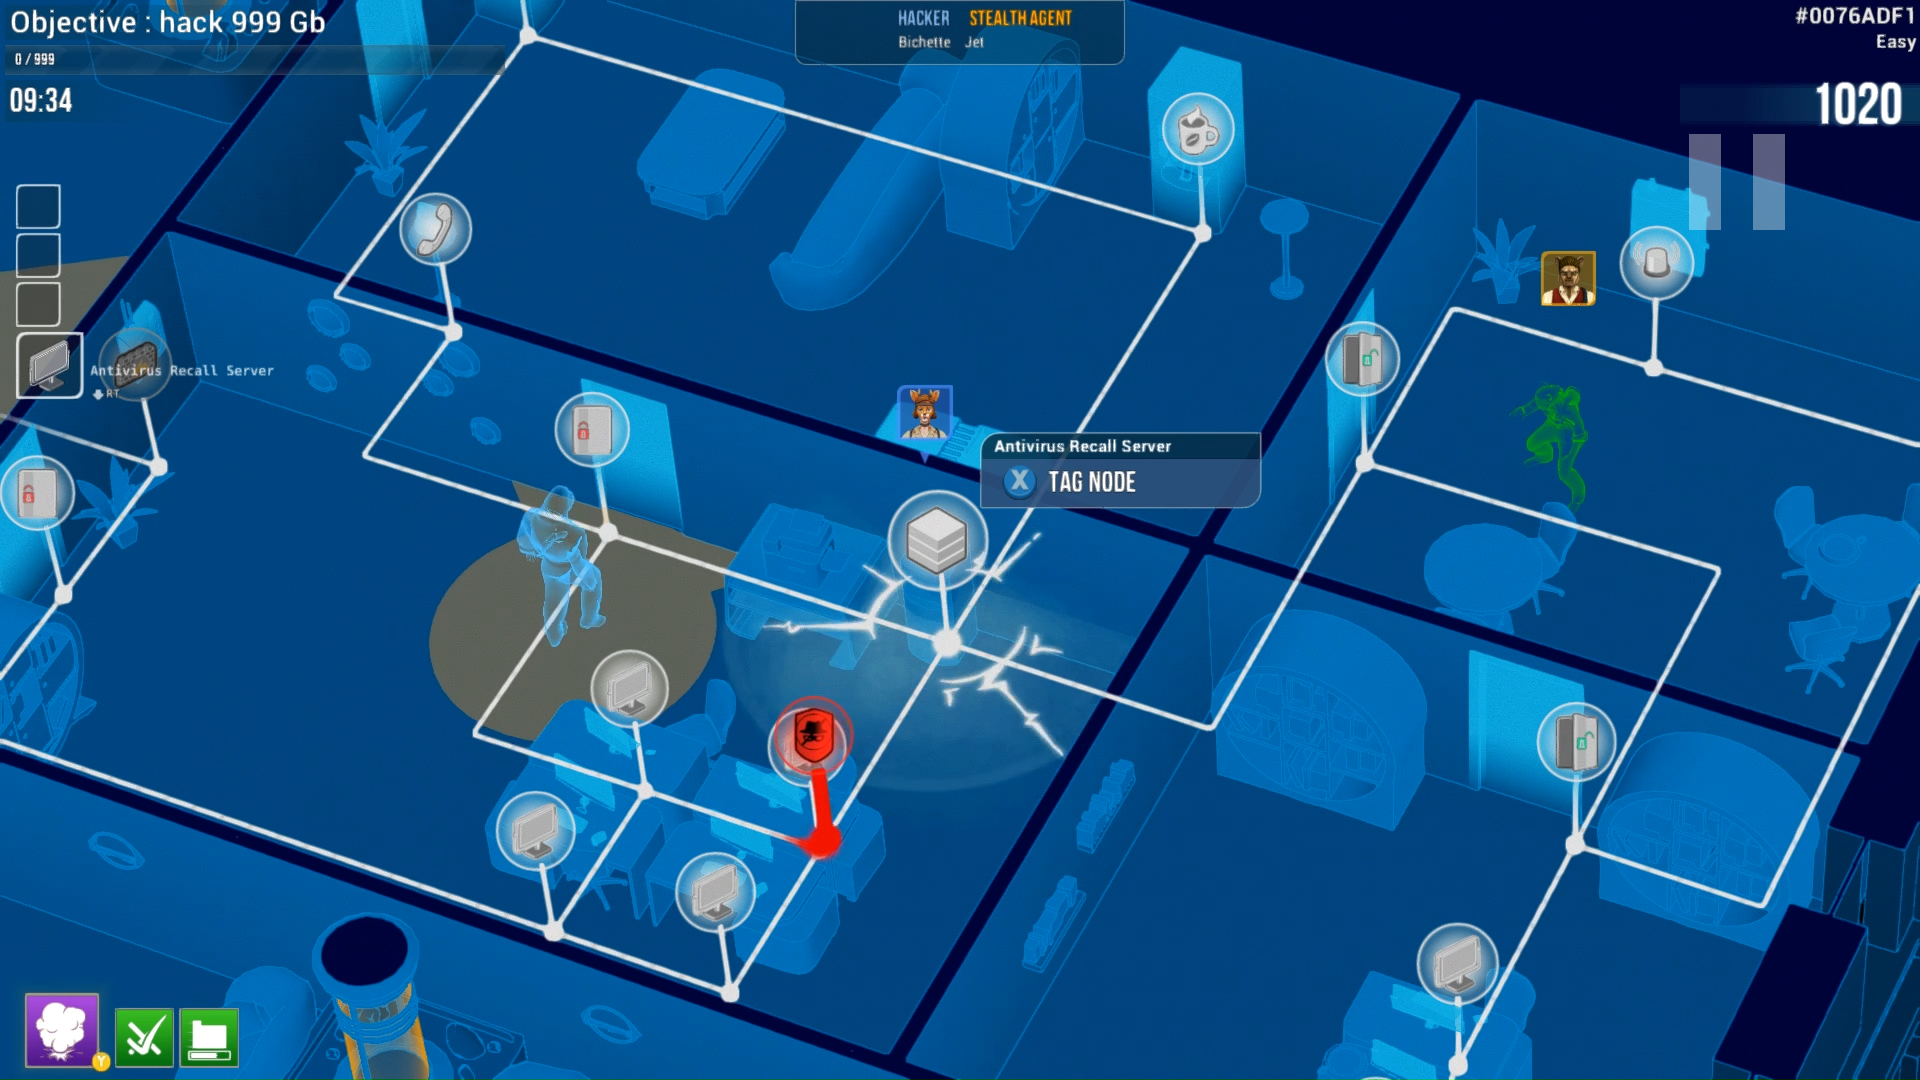 Hacktag – 2 player co-op asymetric stealth game